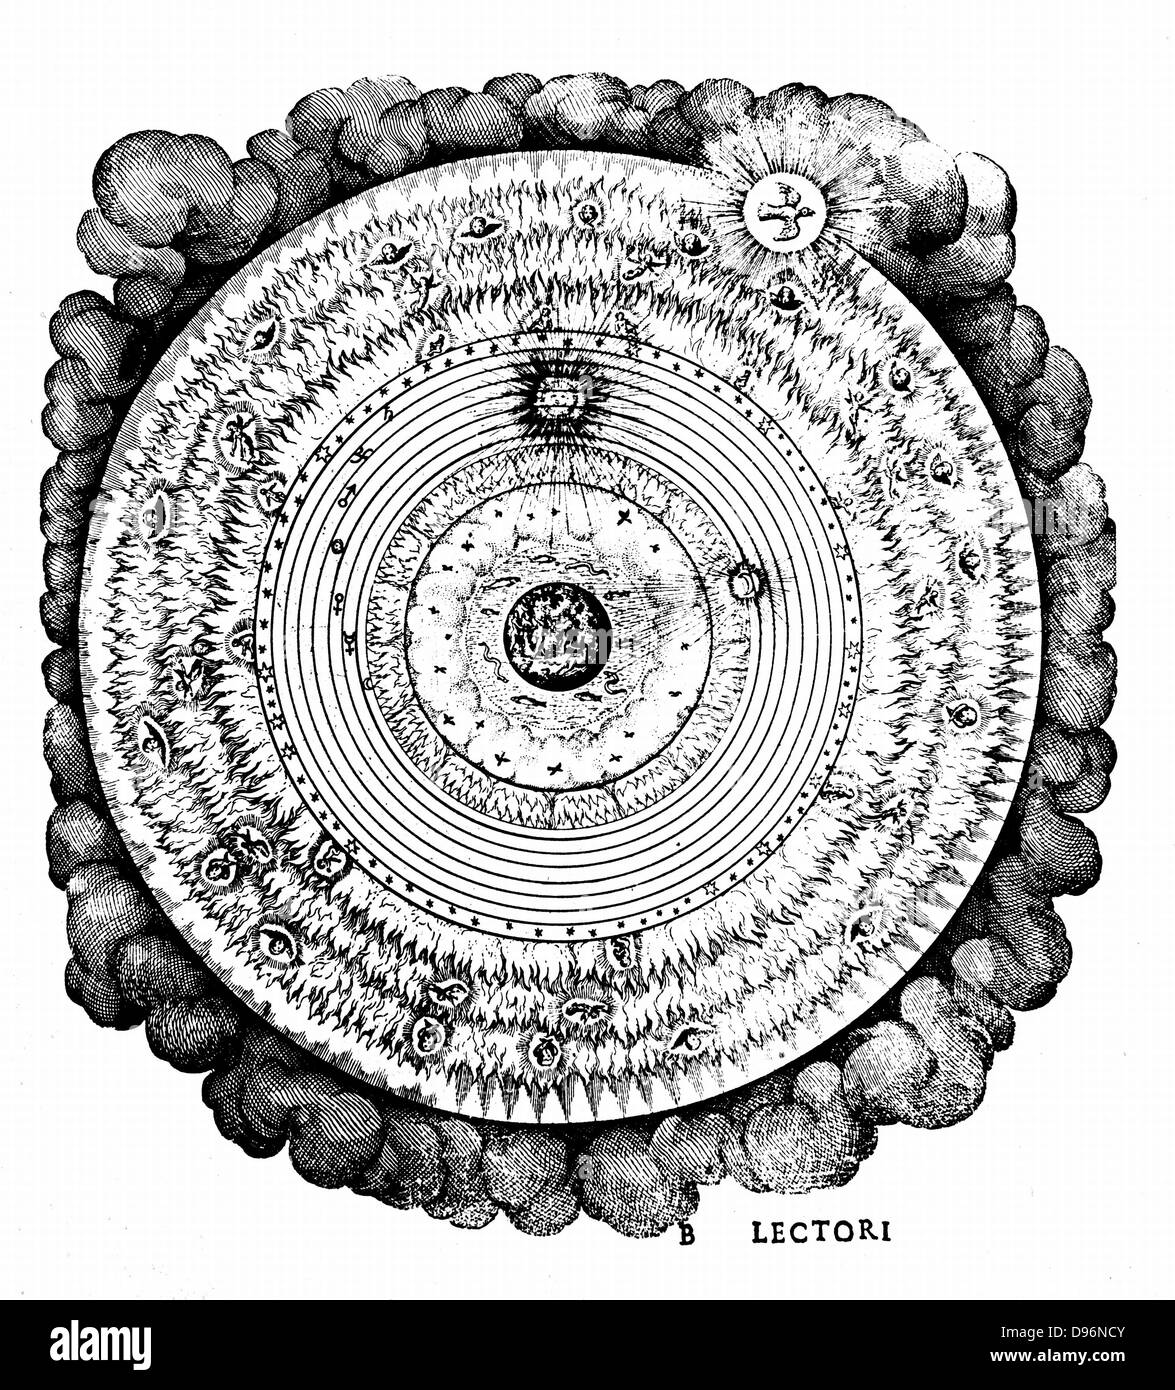 Geocentric universe showing the Earth surrounded by the spheres of water, air and fire, and by the spheres of the Stock Photo